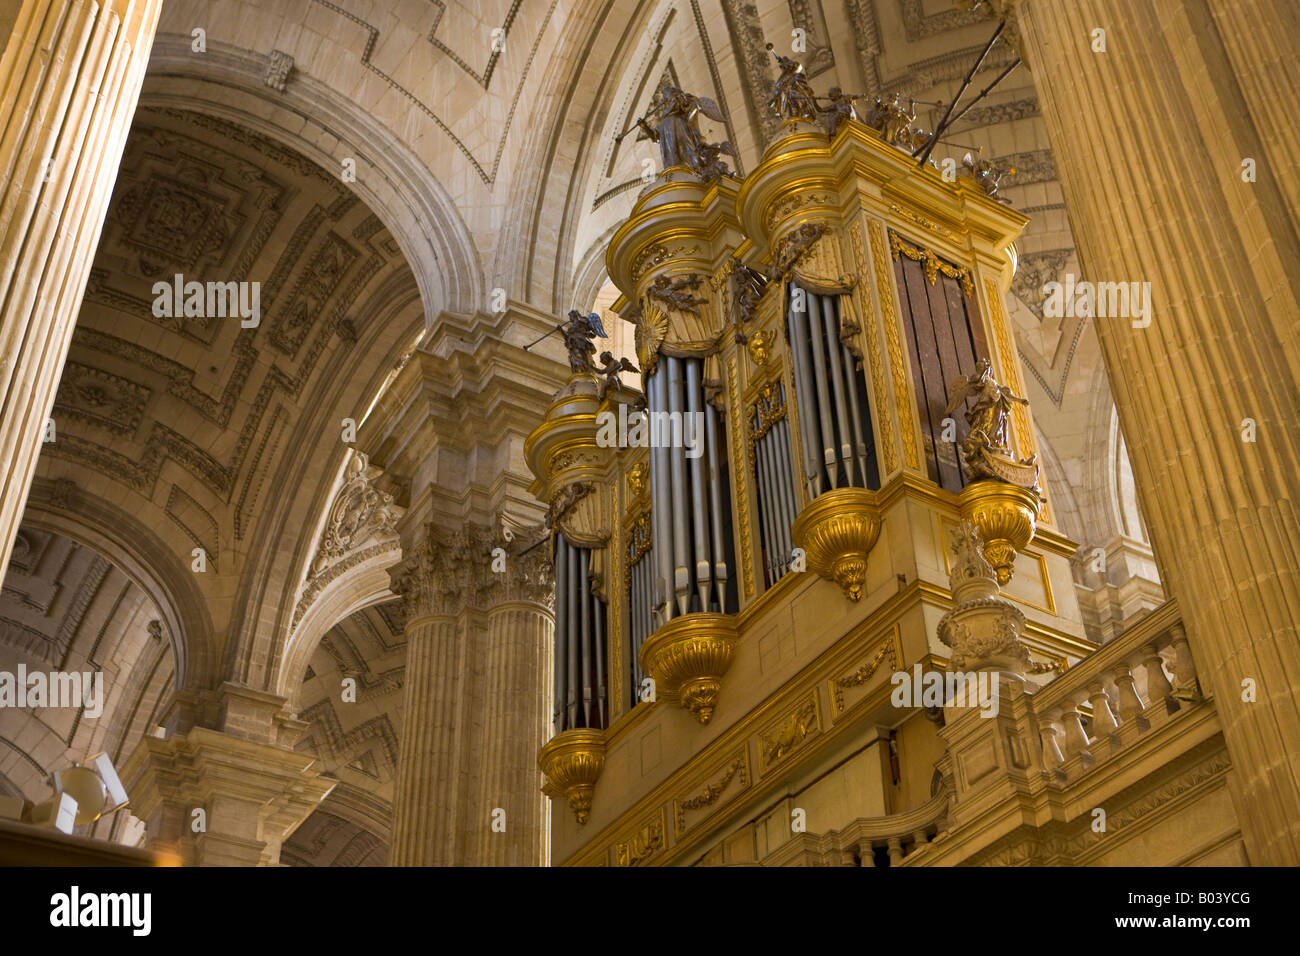 Pipe Organ at the Cathedral of Jaen, Sagrario District, City of Jaen, Province of Jaen, Andalusia (Andalucia), Spain, - Stock Image